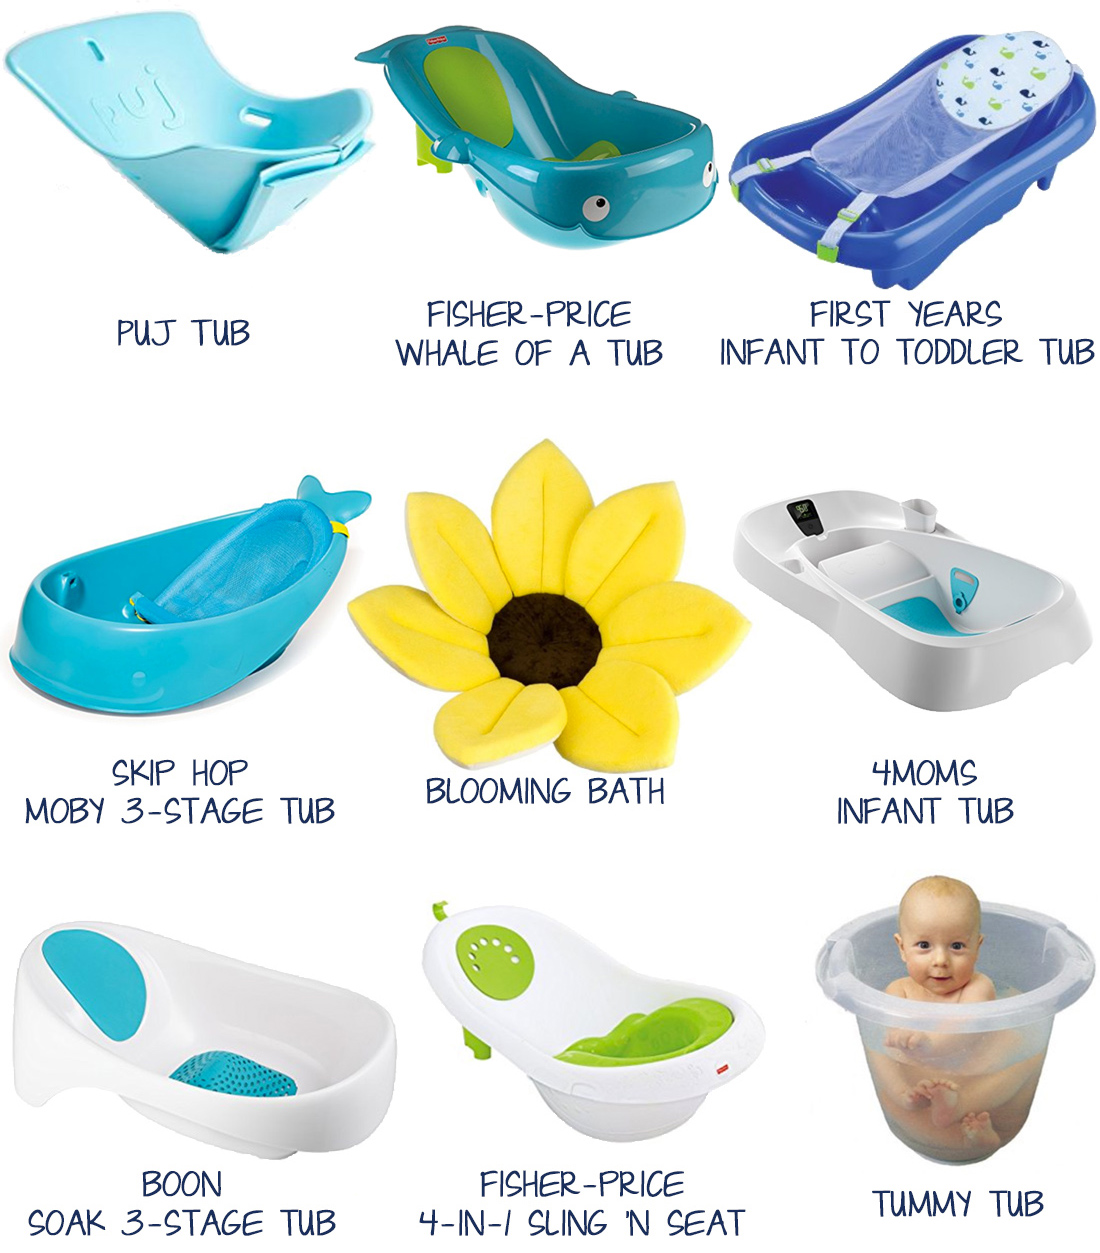 Best Infant Baby Bath Tubs (Puj Tub, Fisher-Price Whale of a Tub, First Years Infant to Toddler Tub, Skip Hop Moby 3-Stage Tub, Blooming Bath, 4Moms Infant Tub, Boon Soak 3-Stage Tub, Fisher-Price 4-in-1 Sling N Seat, Tummy Tub) ~Whining With Wine~